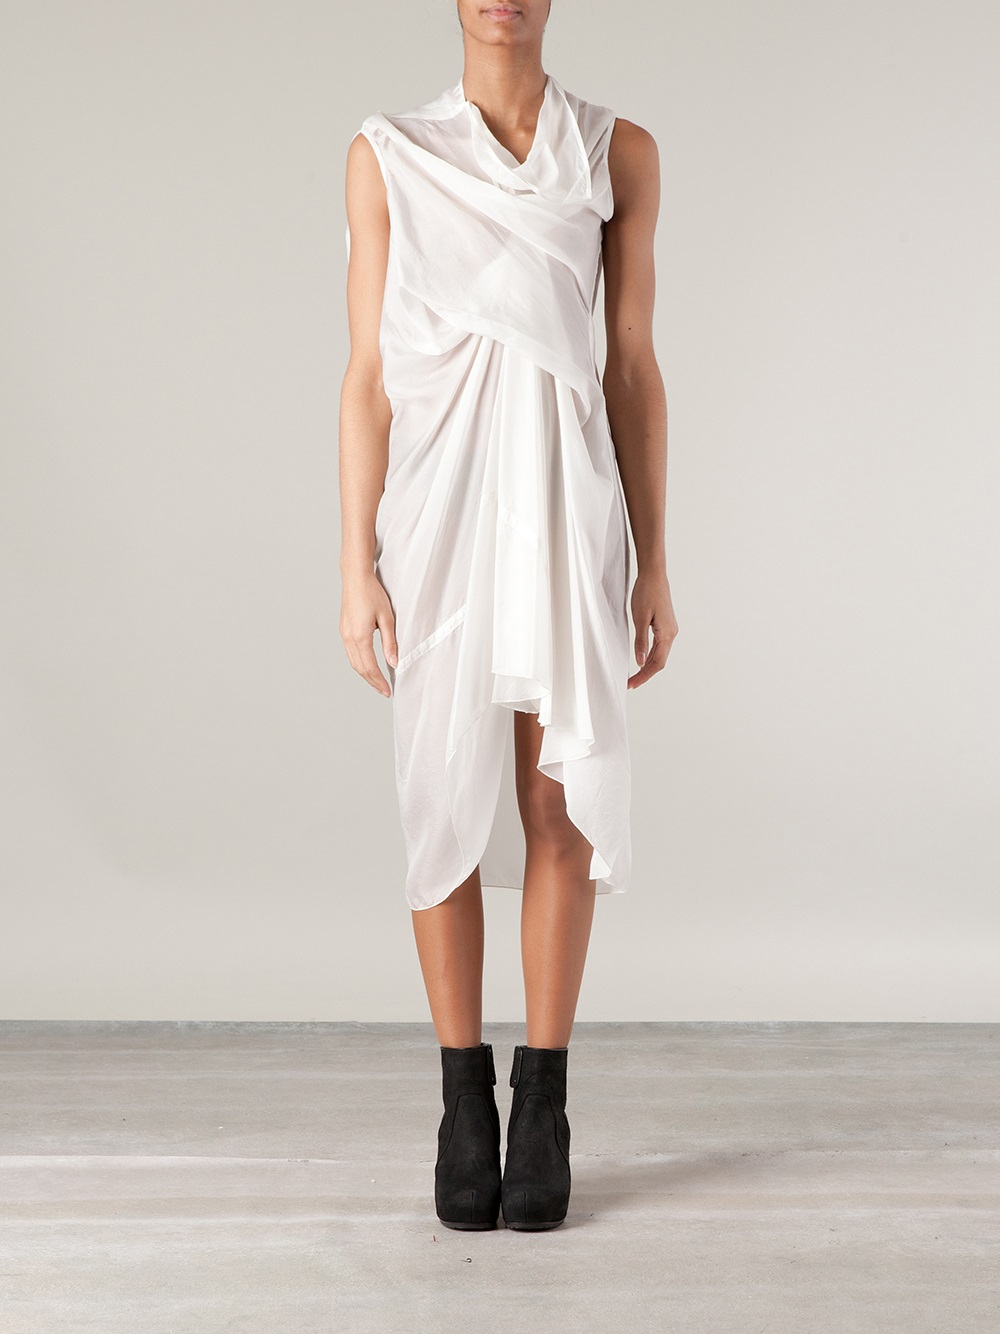 Rick Owens Draped Togastyle Dress In White Lyst